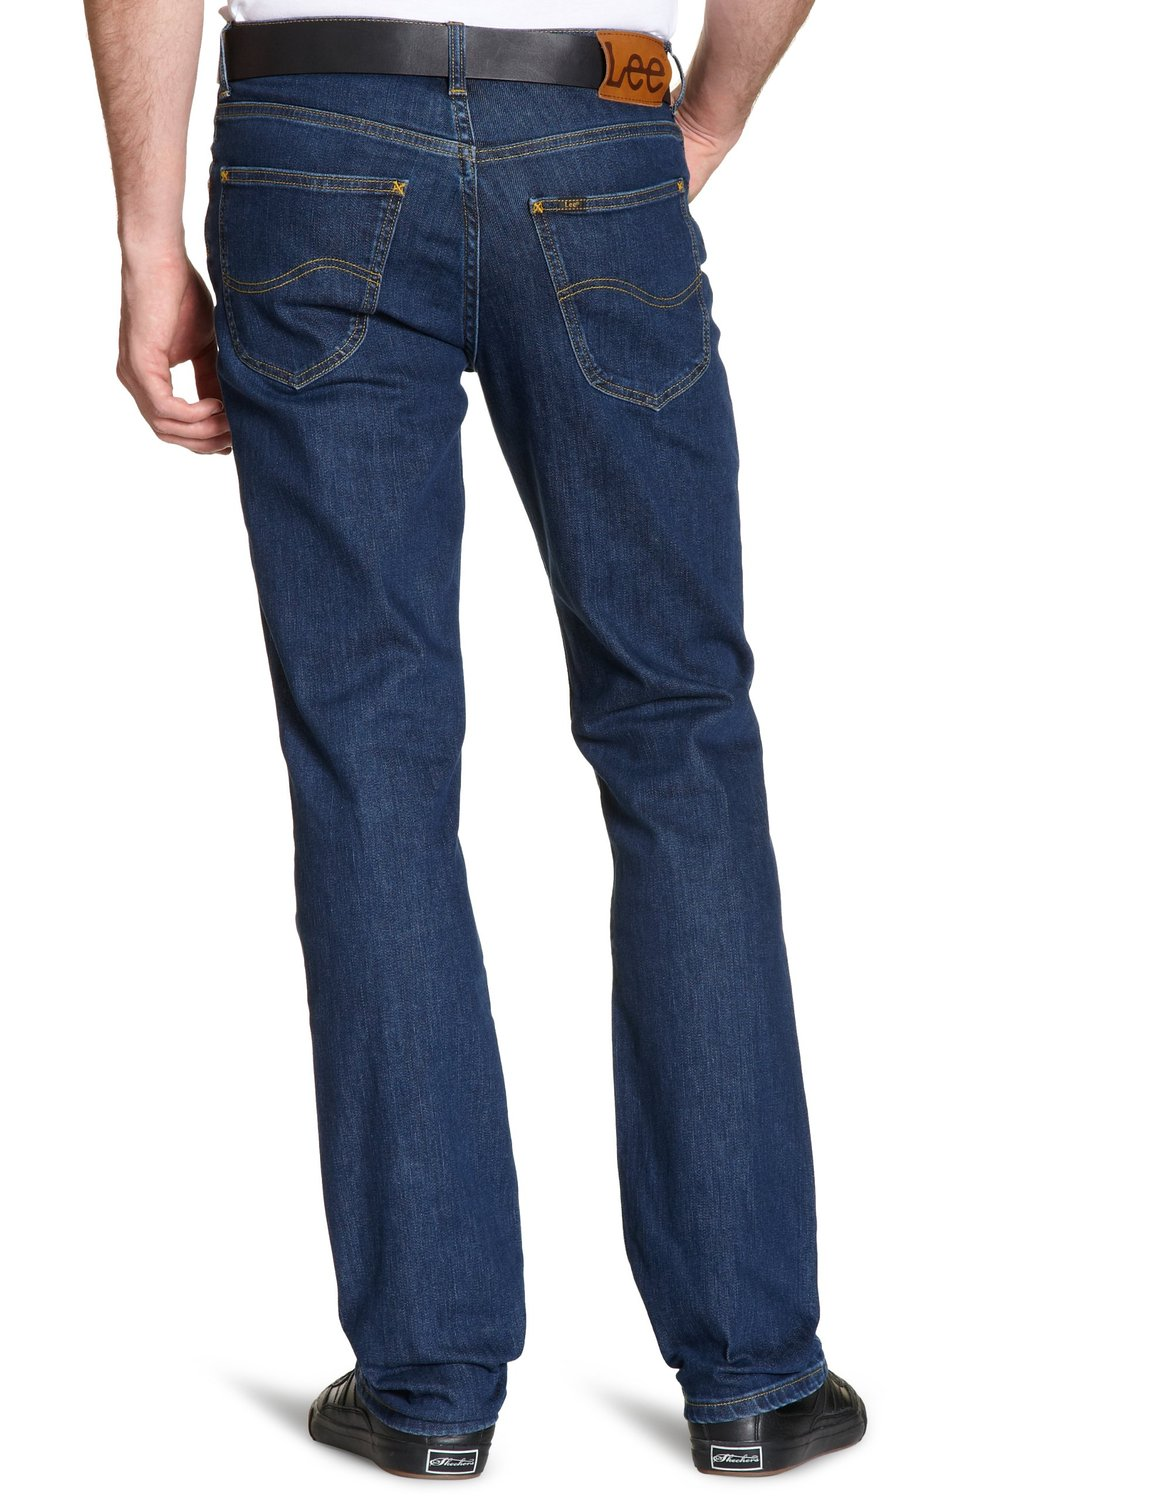 La Redoute Collections Mens Stretch Denim Slim Fit Jeans. Sold by La Redoute. $ Castaluna For Men Mens Comfort Fit Stretch Jeans, Length 1. Sold by La Redoute. $ $ Ralph Lauren Mens Whiskered Stretch Jeans. Sold by Tags Weekly. $ $ Ralph Lauren Mens Sullivan Stretch .